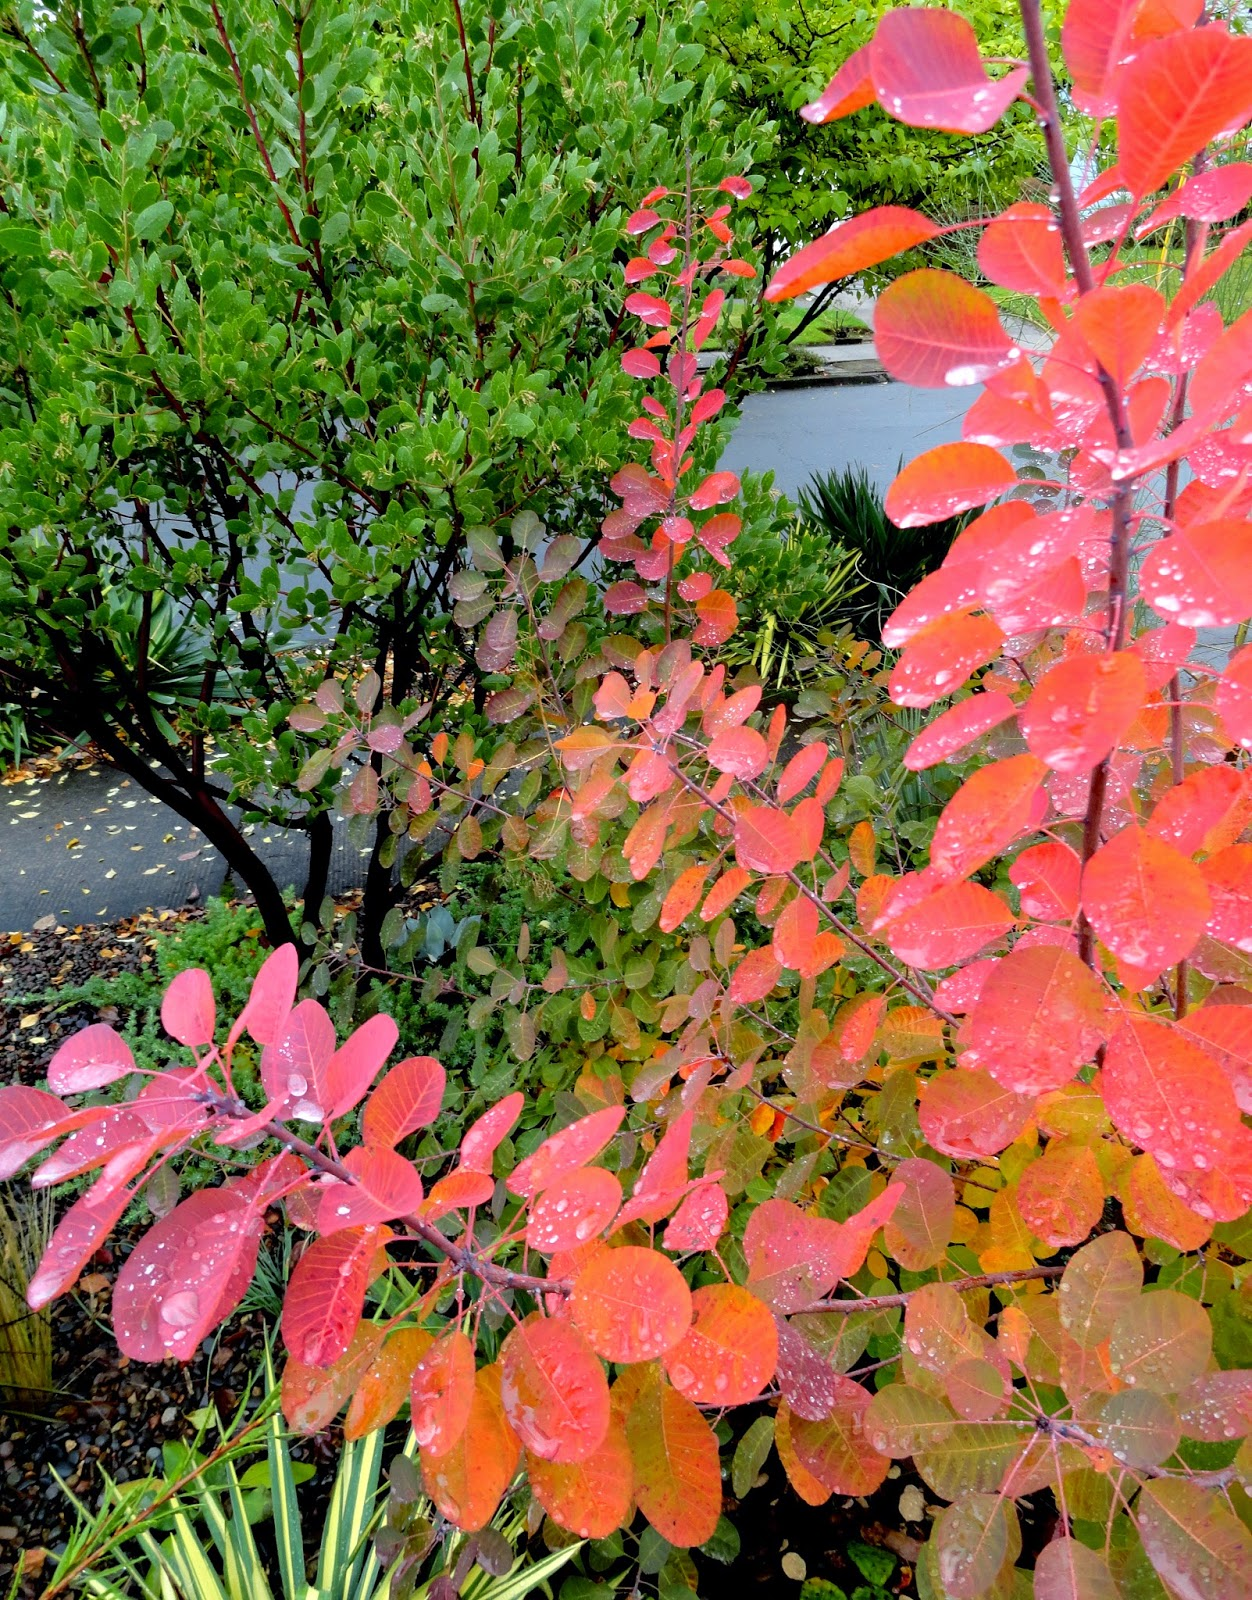 Danger Garden Cotinus Coggygria Royal Purple Is My Favorite Plant In The Garden This Week